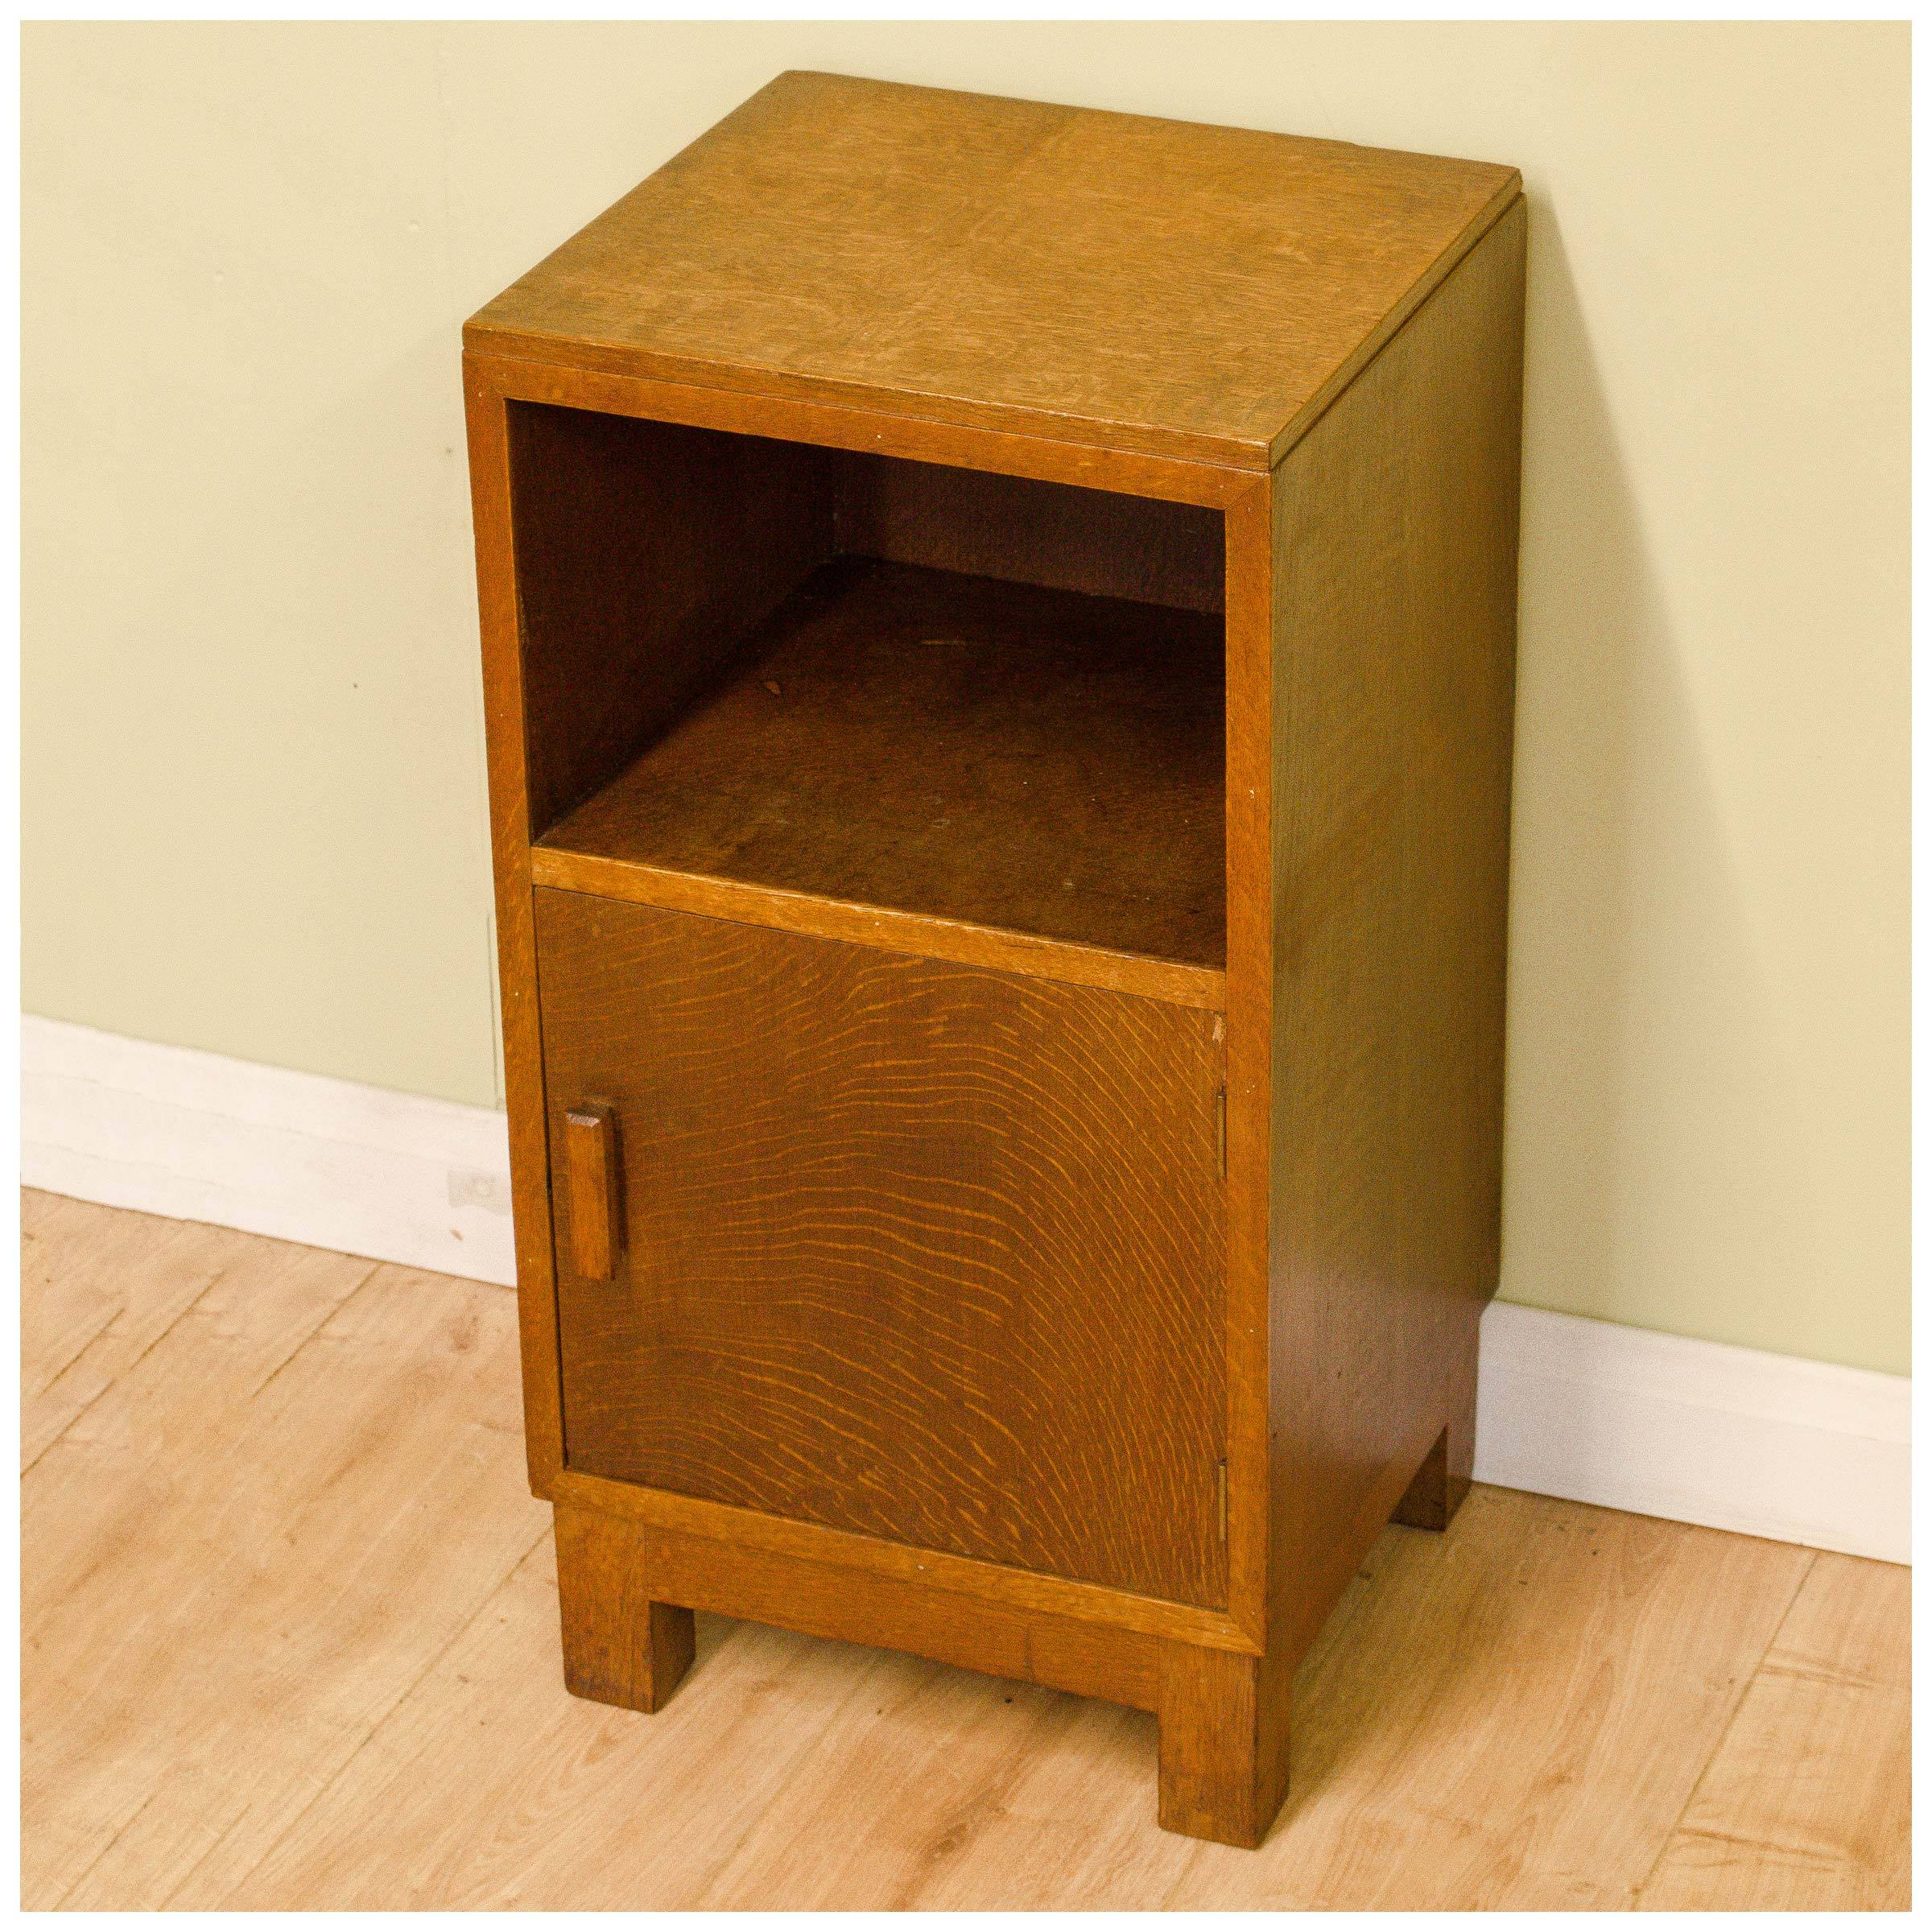 Heal And Co Ambrose Heal Arts And Crafts Oak Bedside